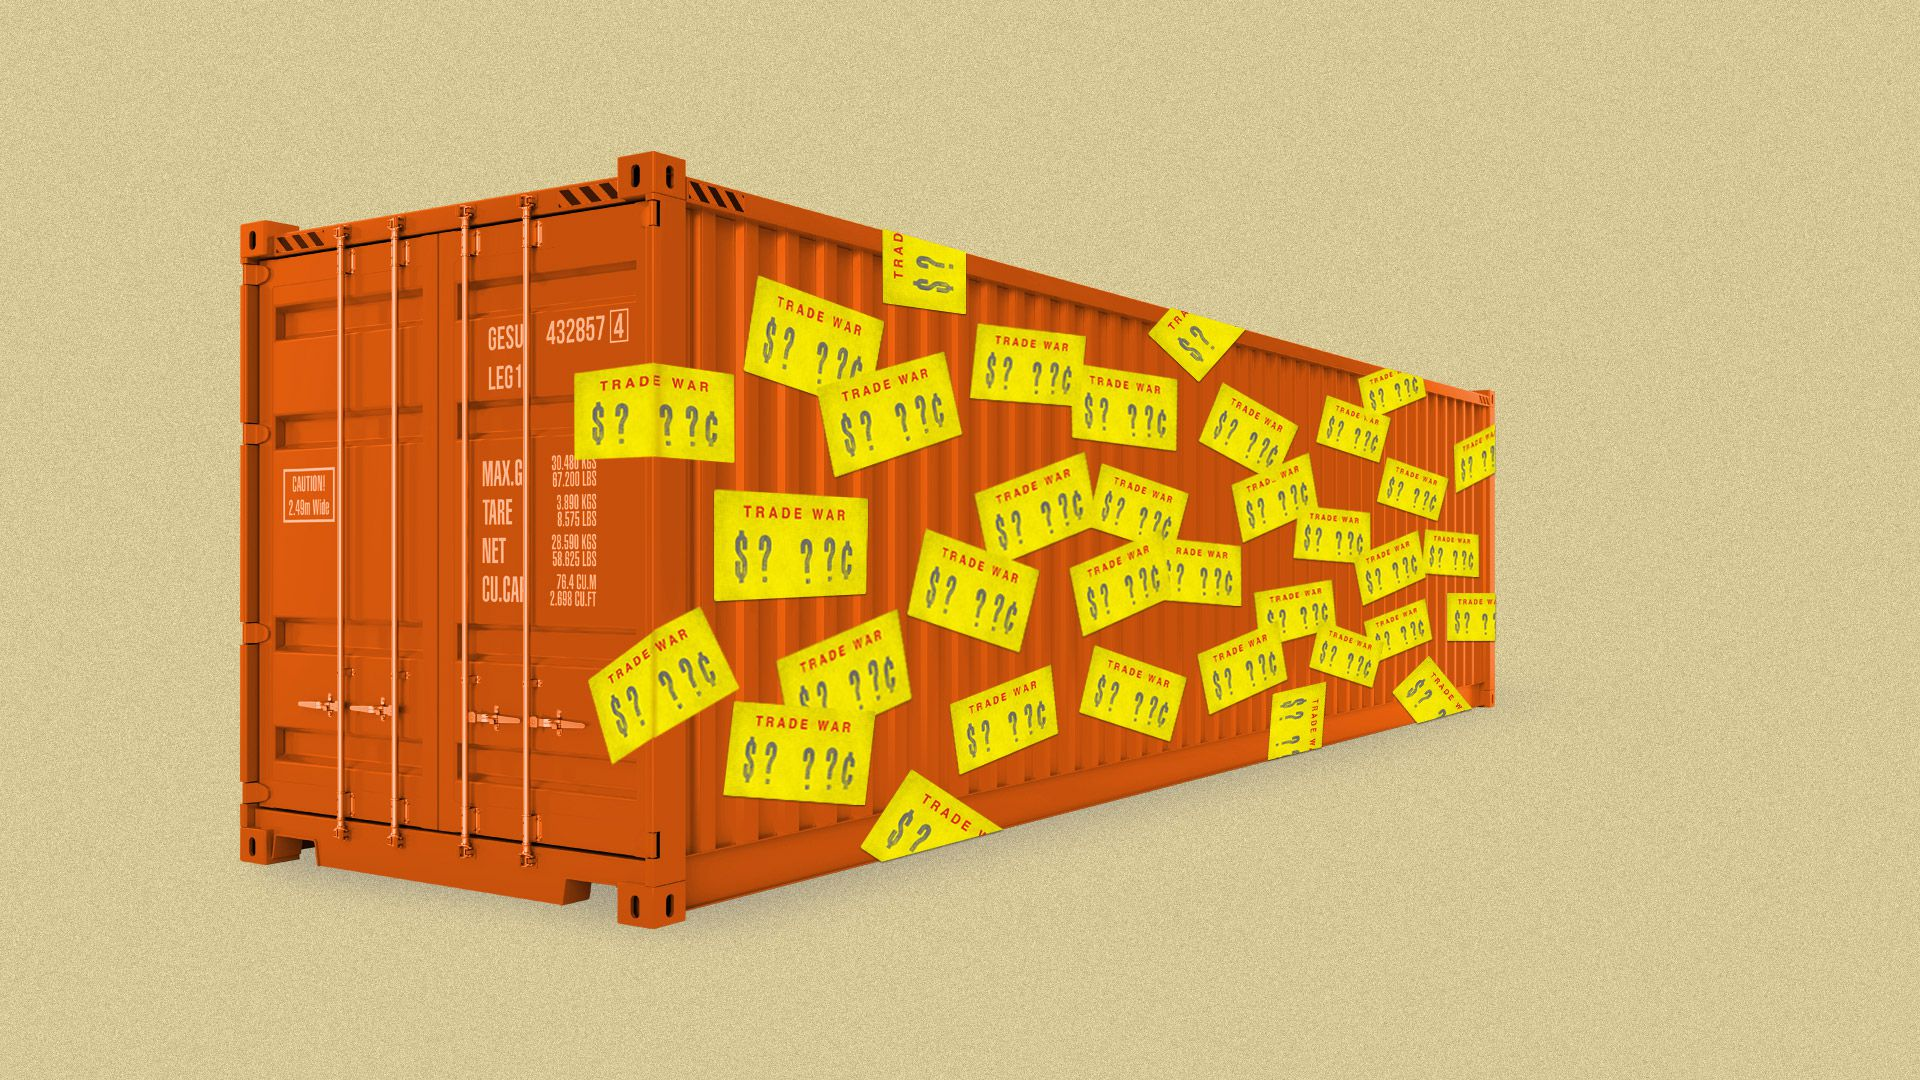 A shipping container covered in price stickers